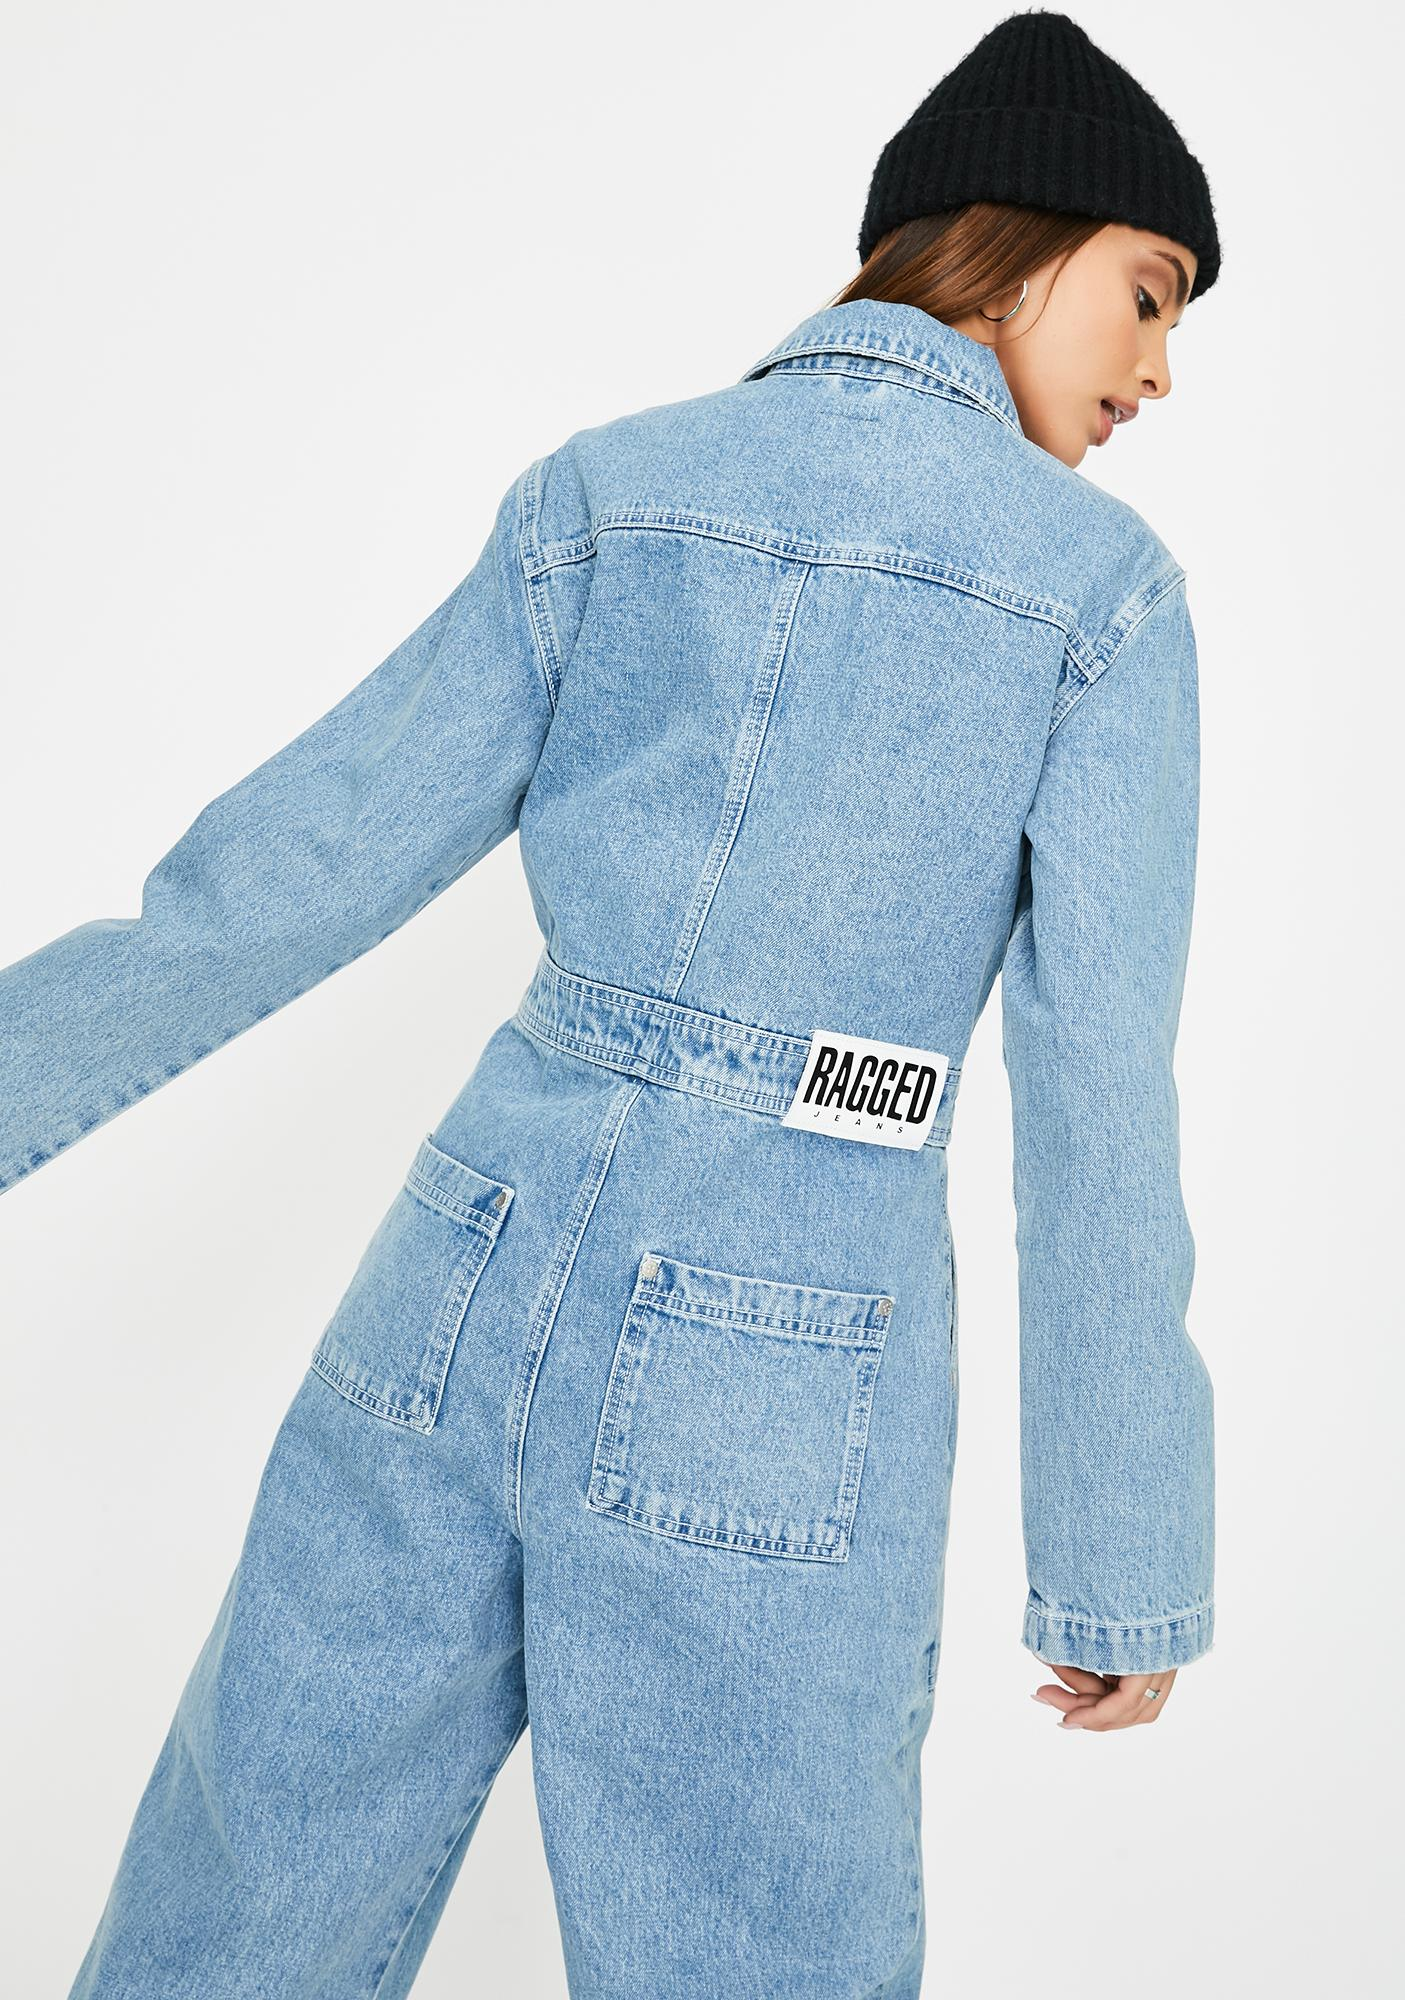 The Ragged Priest Denim Boiler Suit